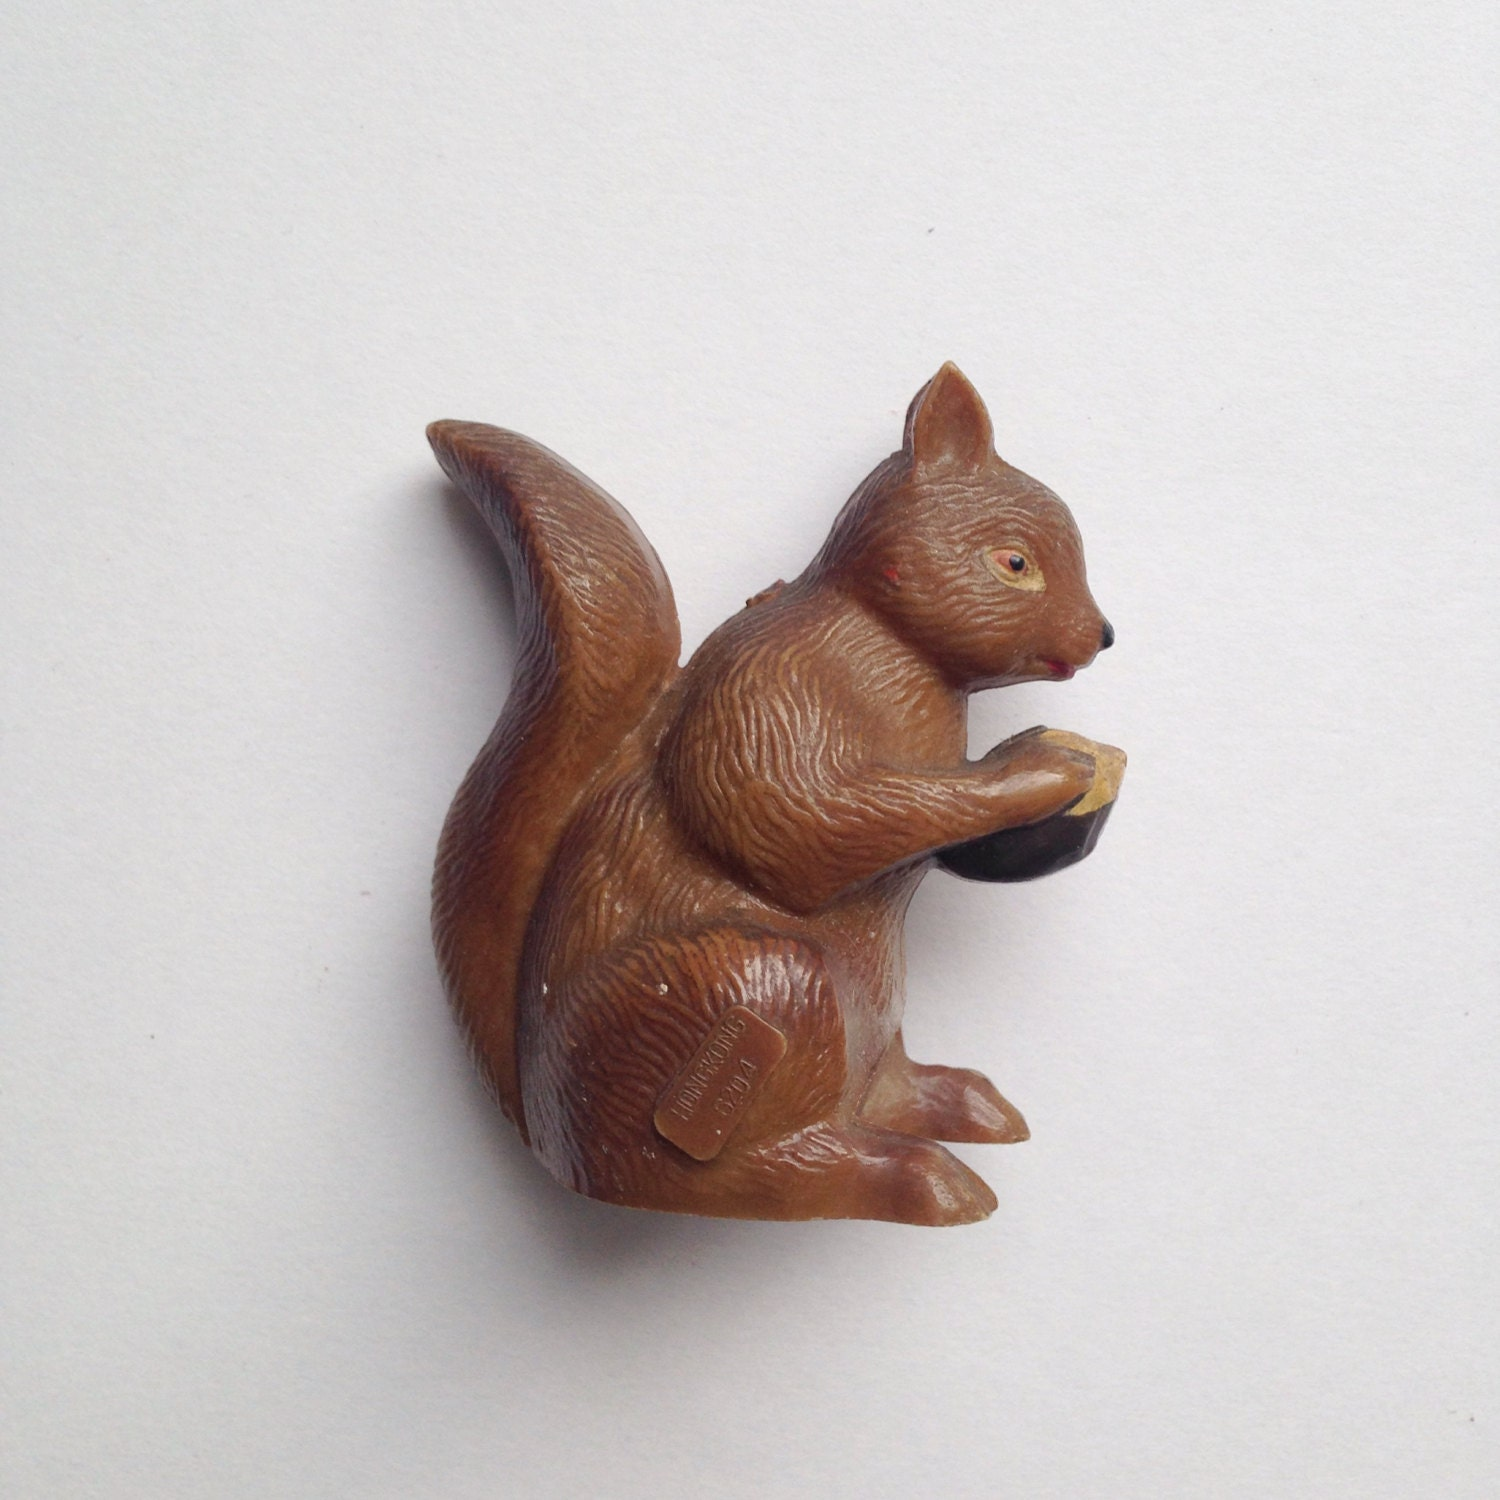 Amazing Hong Kong: RESERVED FOR J. P. Amazing Vintage Hong Kong Plastic Squirrel